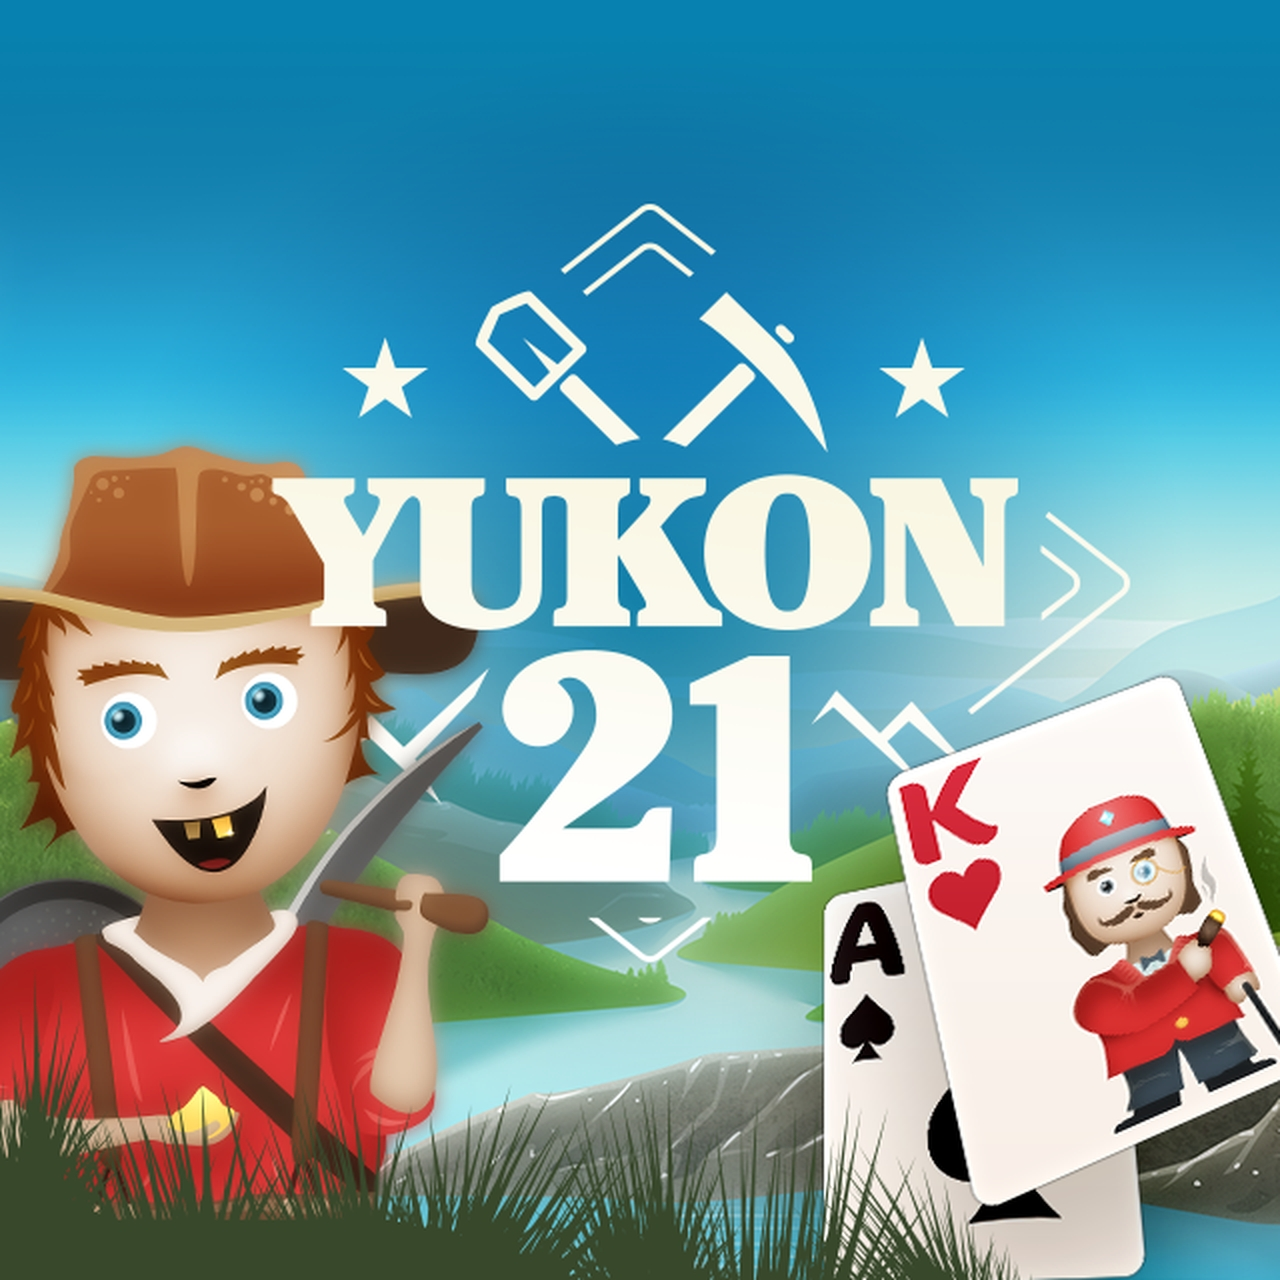 The Yukon 21 Online Slot Demo Game by Spigo